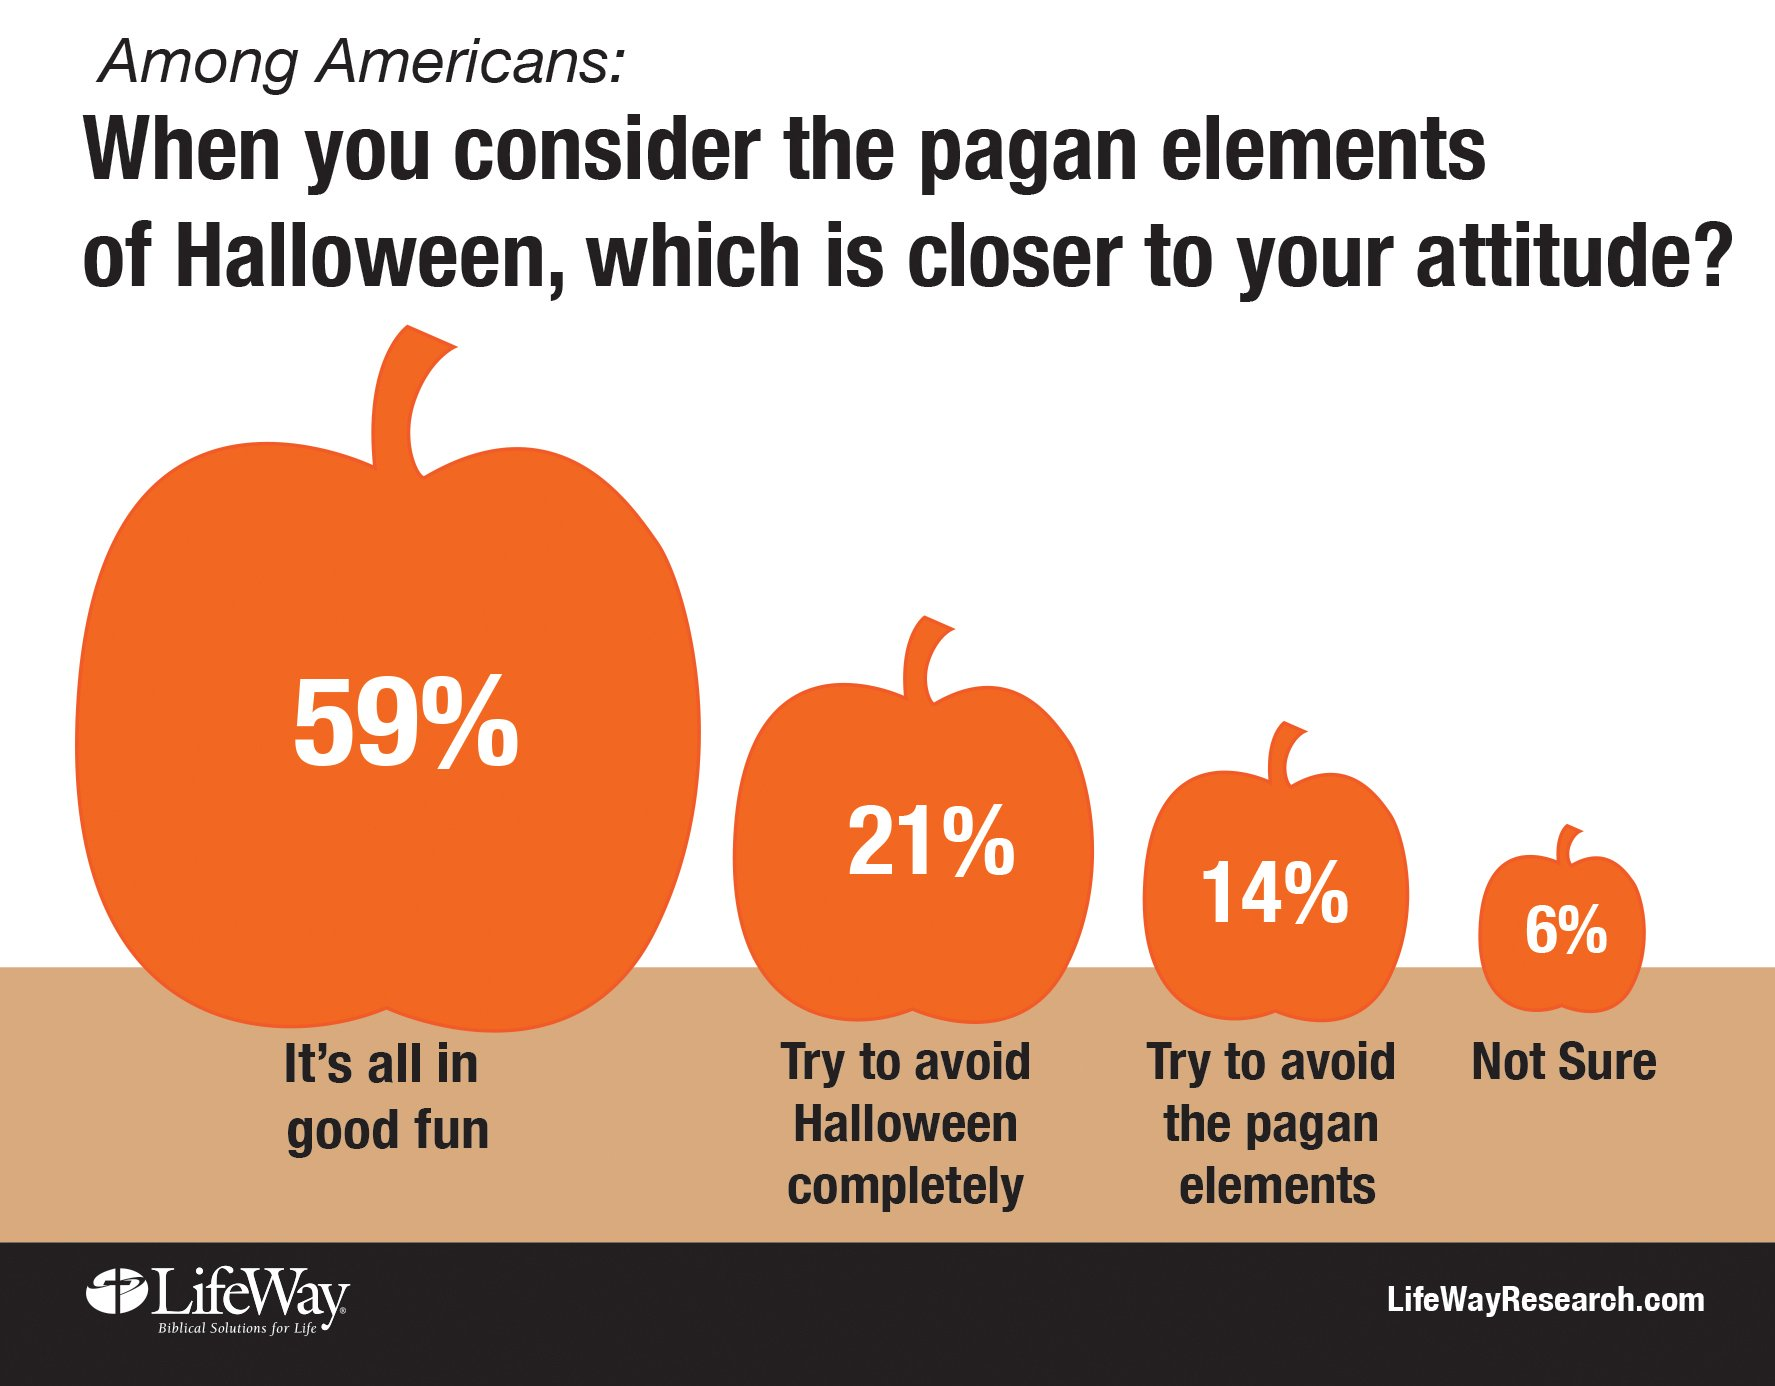 even most christians agree that halloween is fun, not pagan